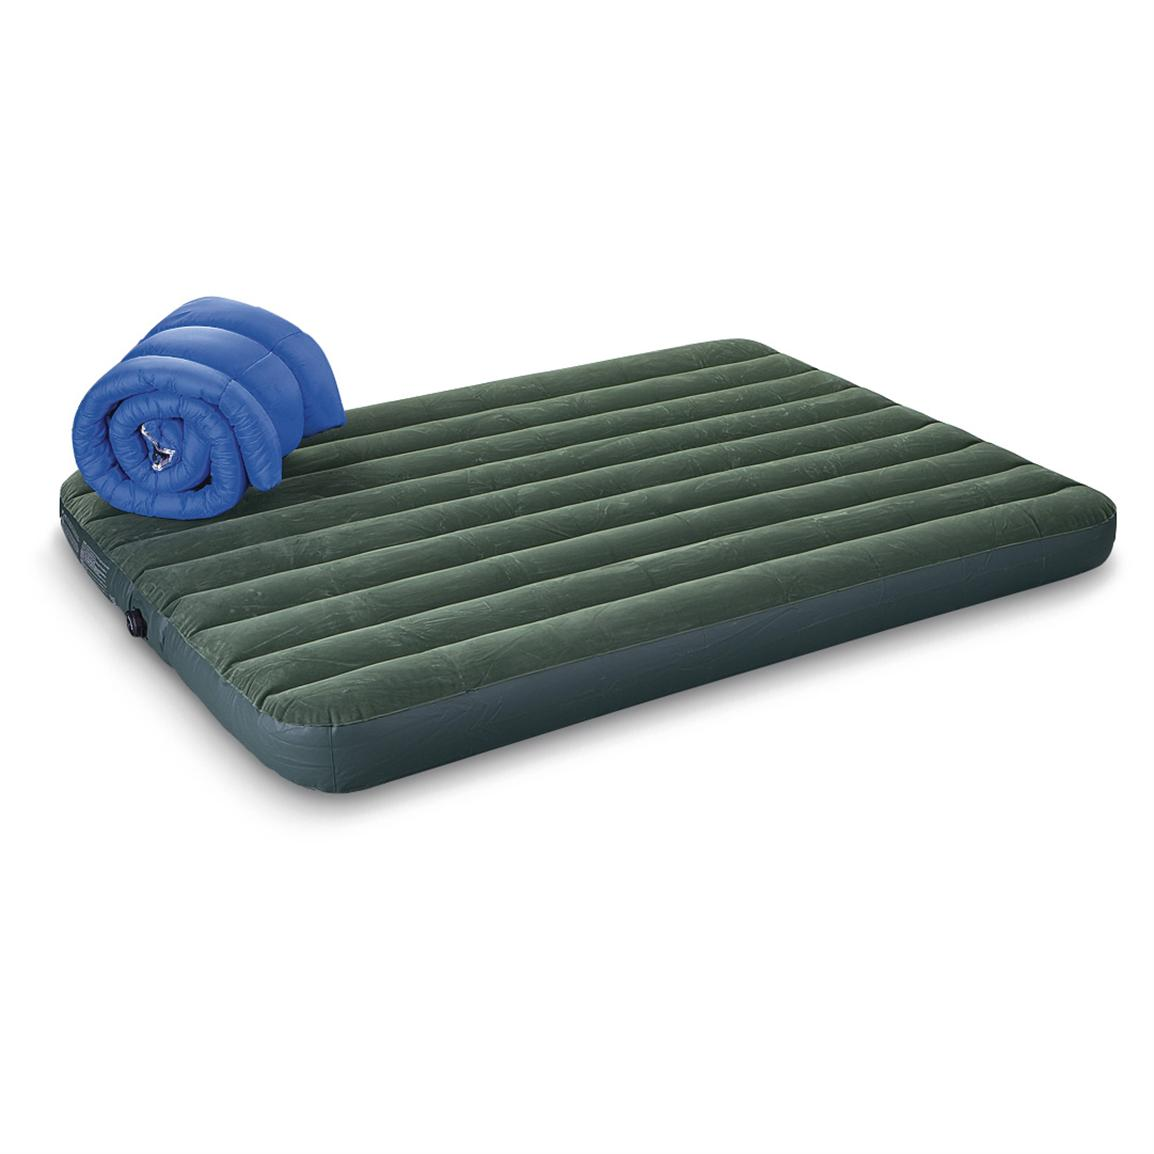 Review of Intex Camp Air Bed with Pump